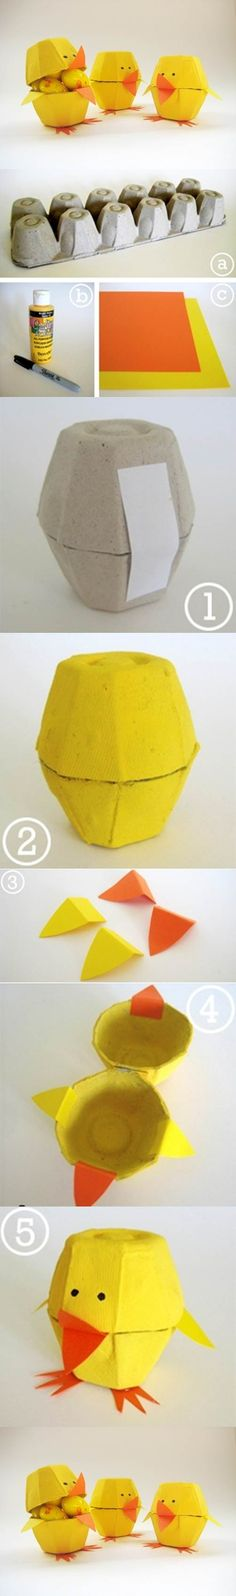 Egg Carton Craft - can use same idea with different designs Easter Art, Easter Crafts For Kids, Toddler Crafts, Preschool Crafts, Diy For Kids, Fun Crafts, Diy And Crafts, Arts And Crafts, Paper Crafts